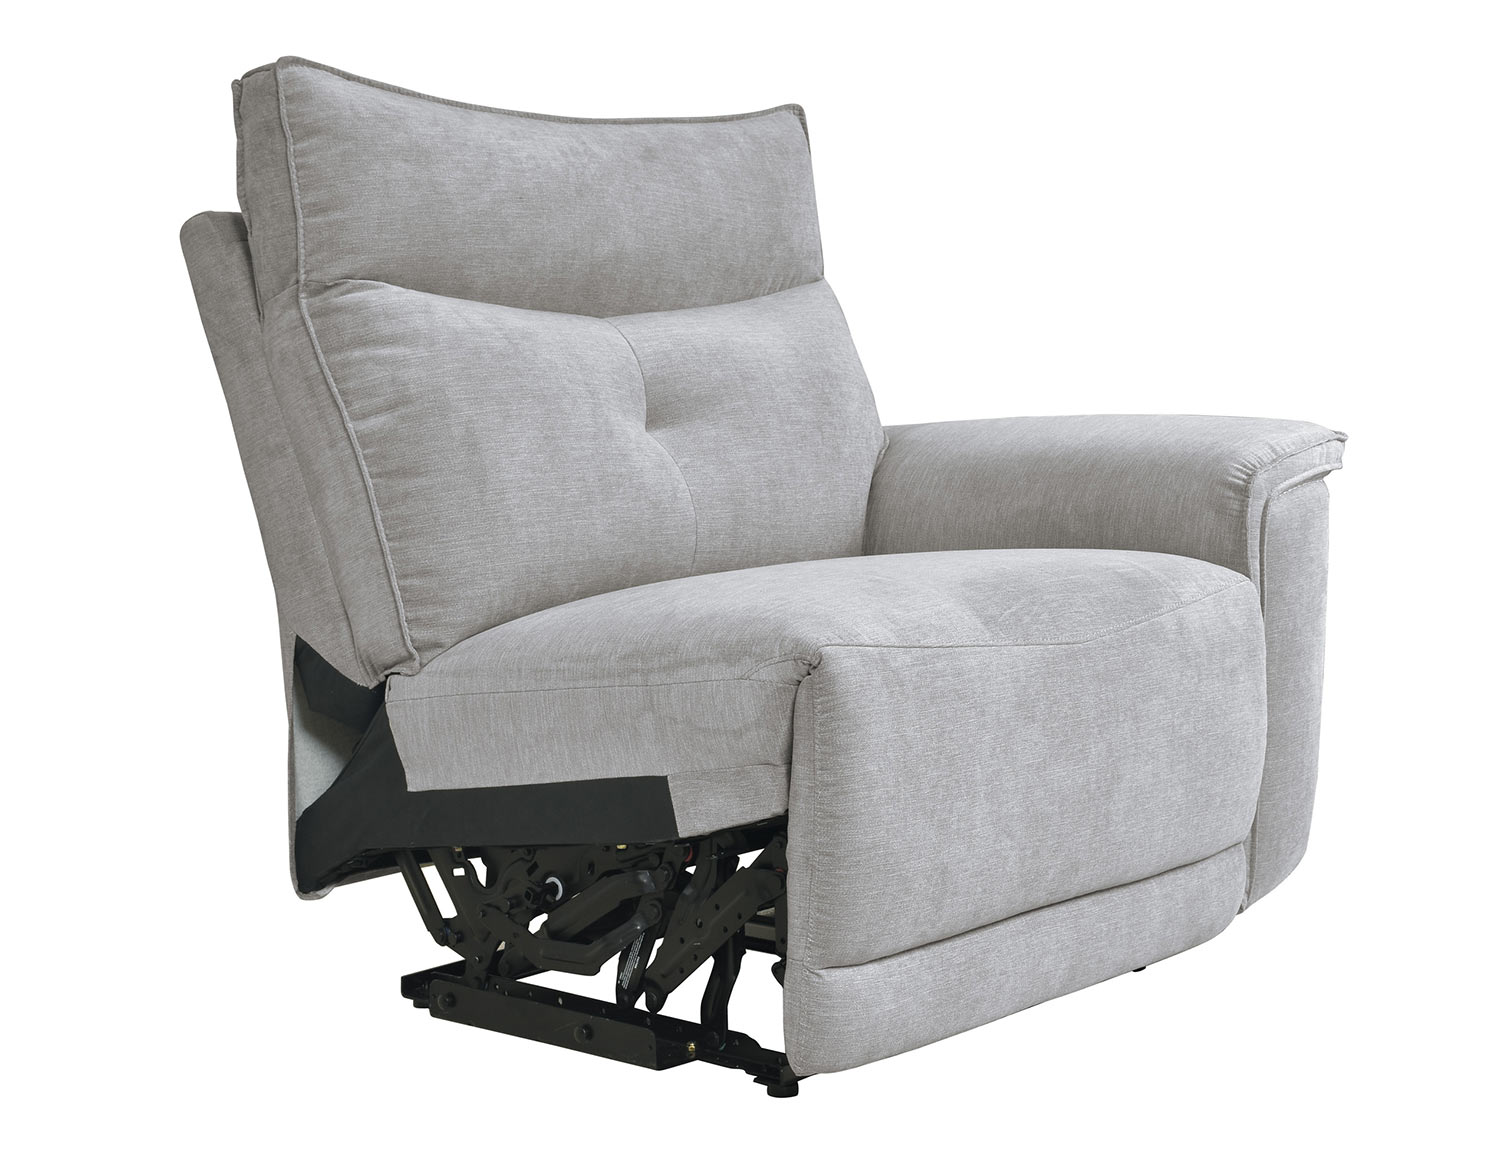 Homelegance Tesoro Right Side Reclining Chair - Mist Gray